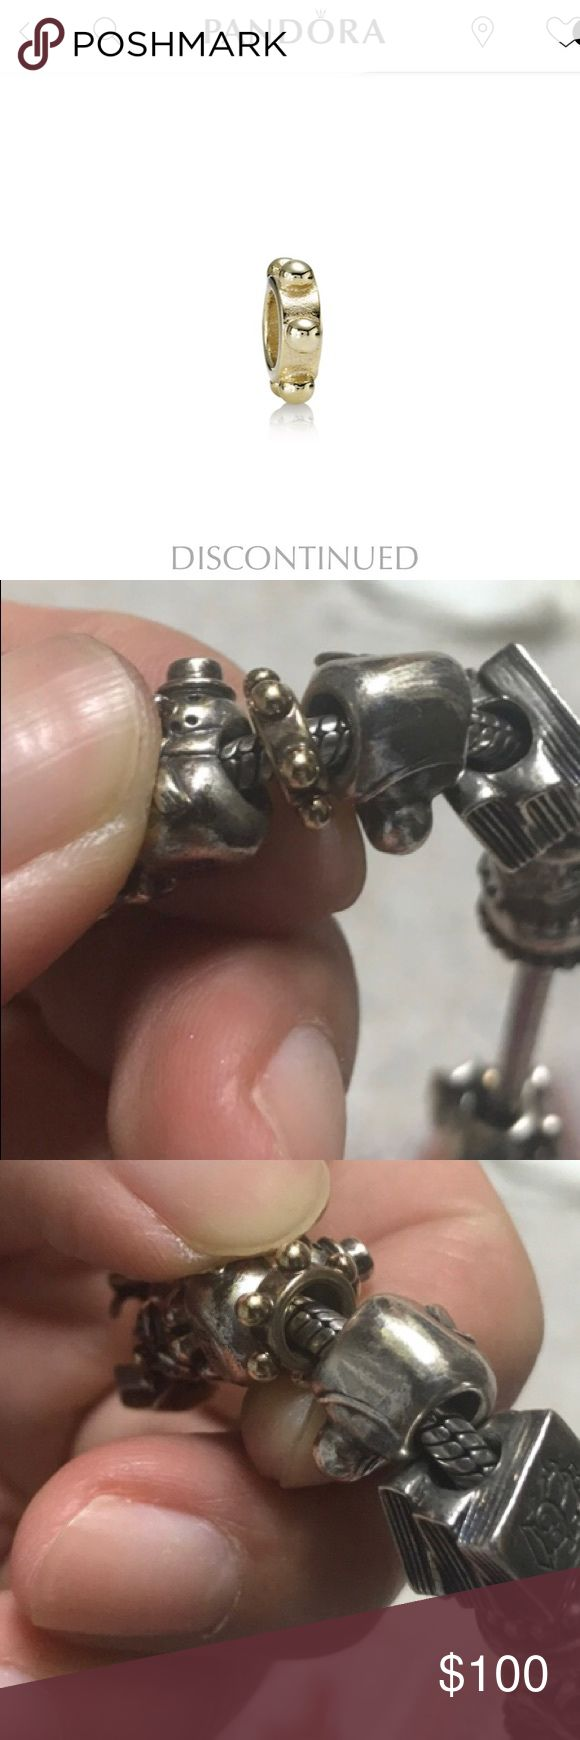 Discontinued Authentic pandora gold charm Used but great addition to any bracelet. Item is now discontinued. Pandora offers lifetime free jewelry cleaning, so charm just needs to be cleaned to its original shine. Open to offers Pandora Jewelry